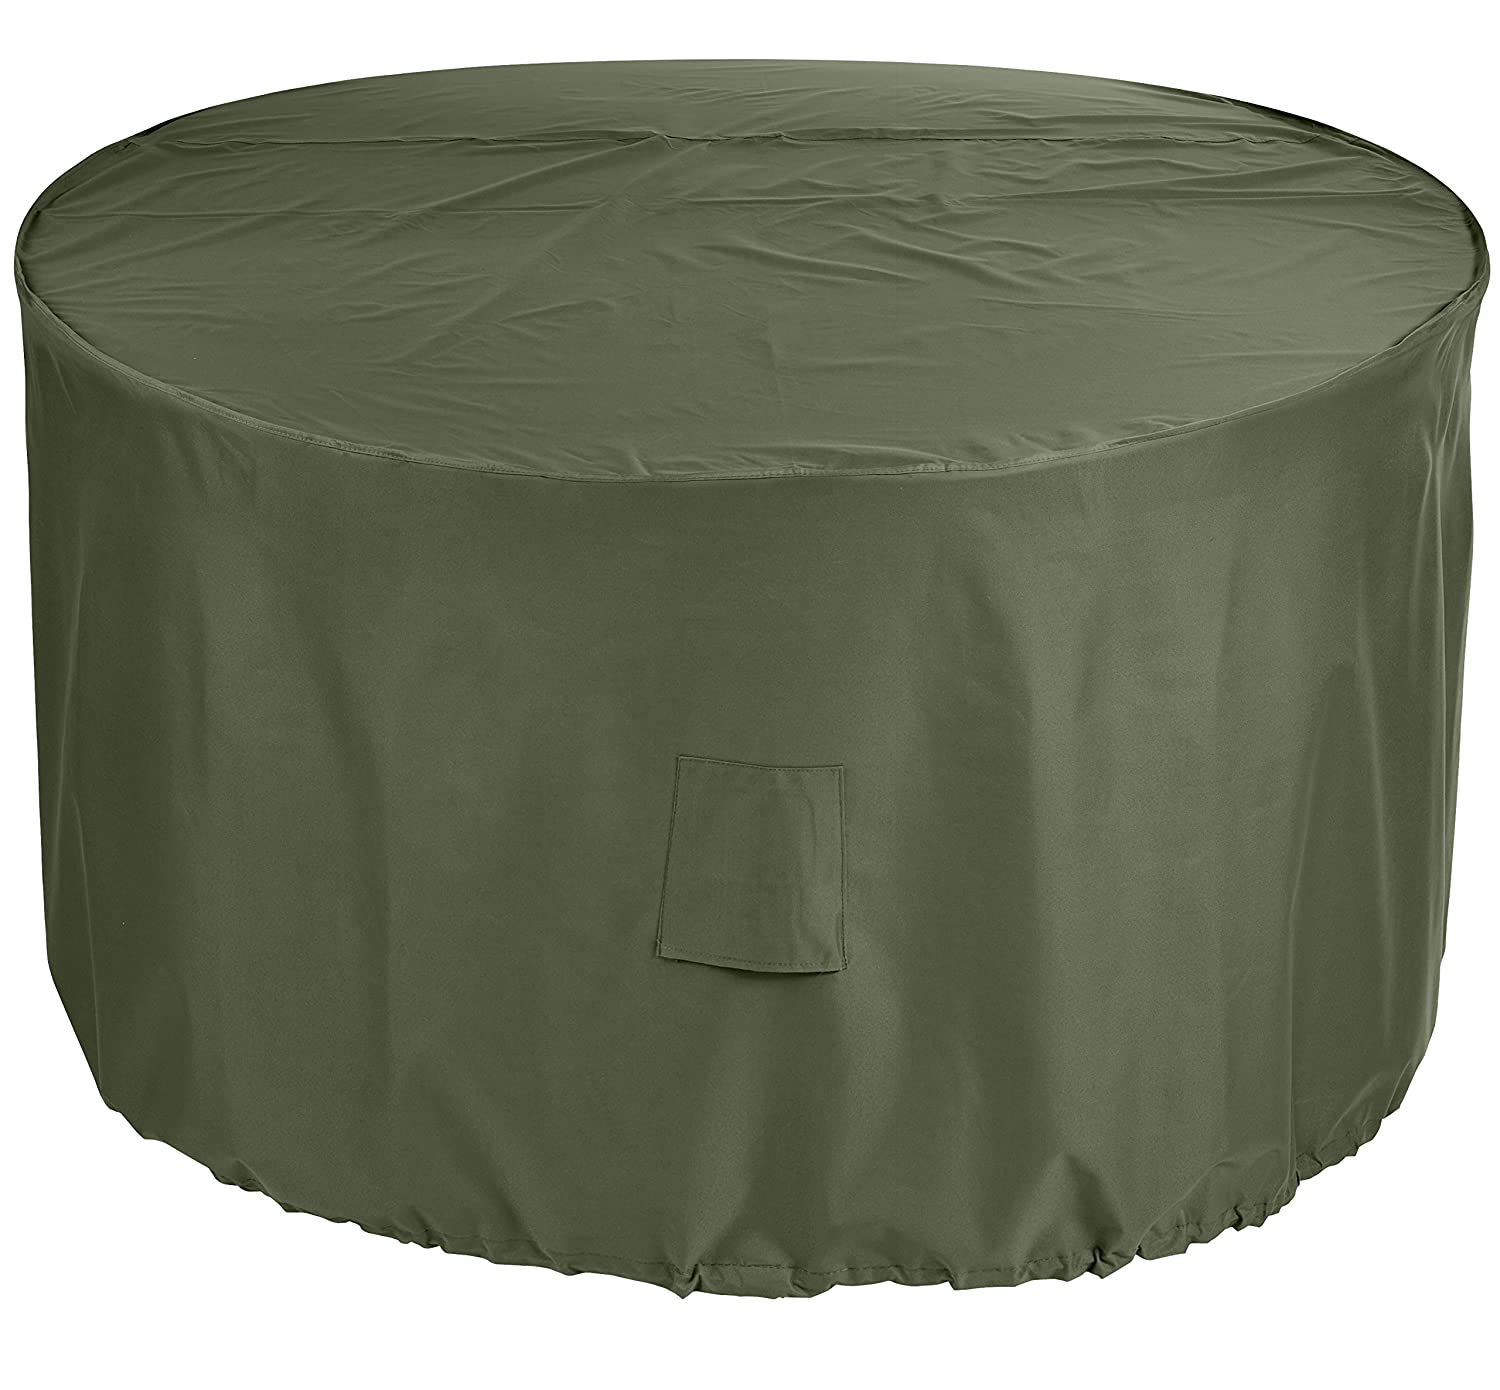 Gardman 34366 4-6 Seater Round Table Cover - Green